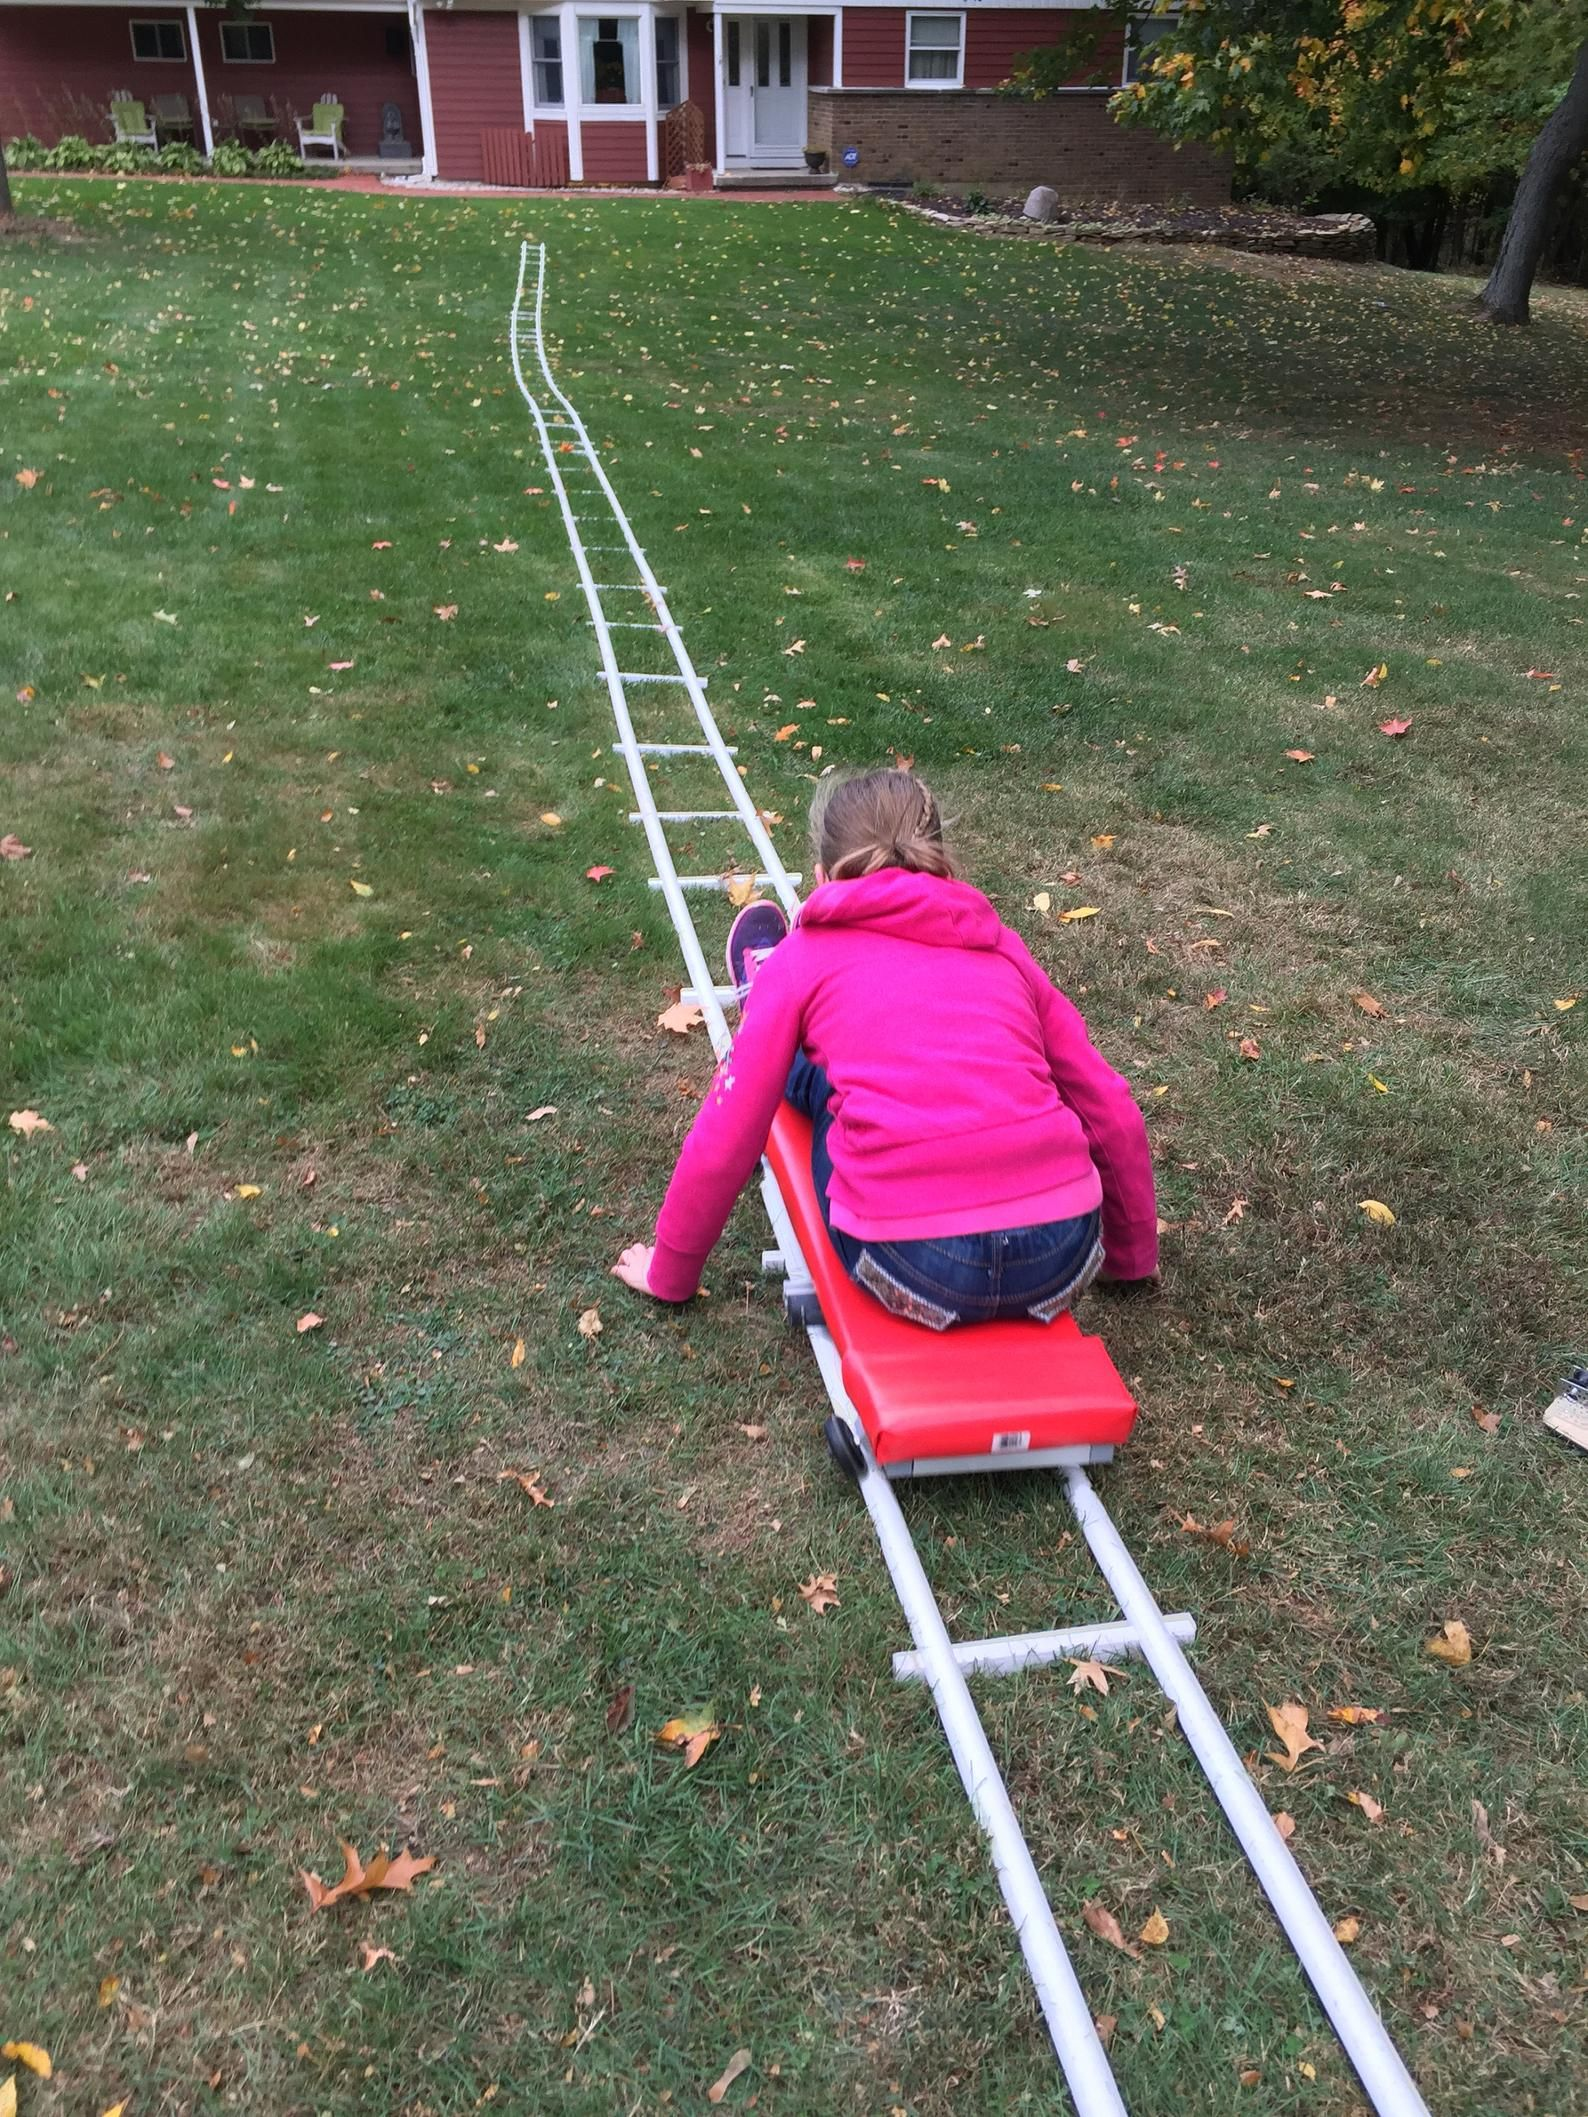 Portable Roller Coaster Build From Plans In 2021 Backyard For Kids Roller Coaster Kids Play Area Diy backyard roller coaster